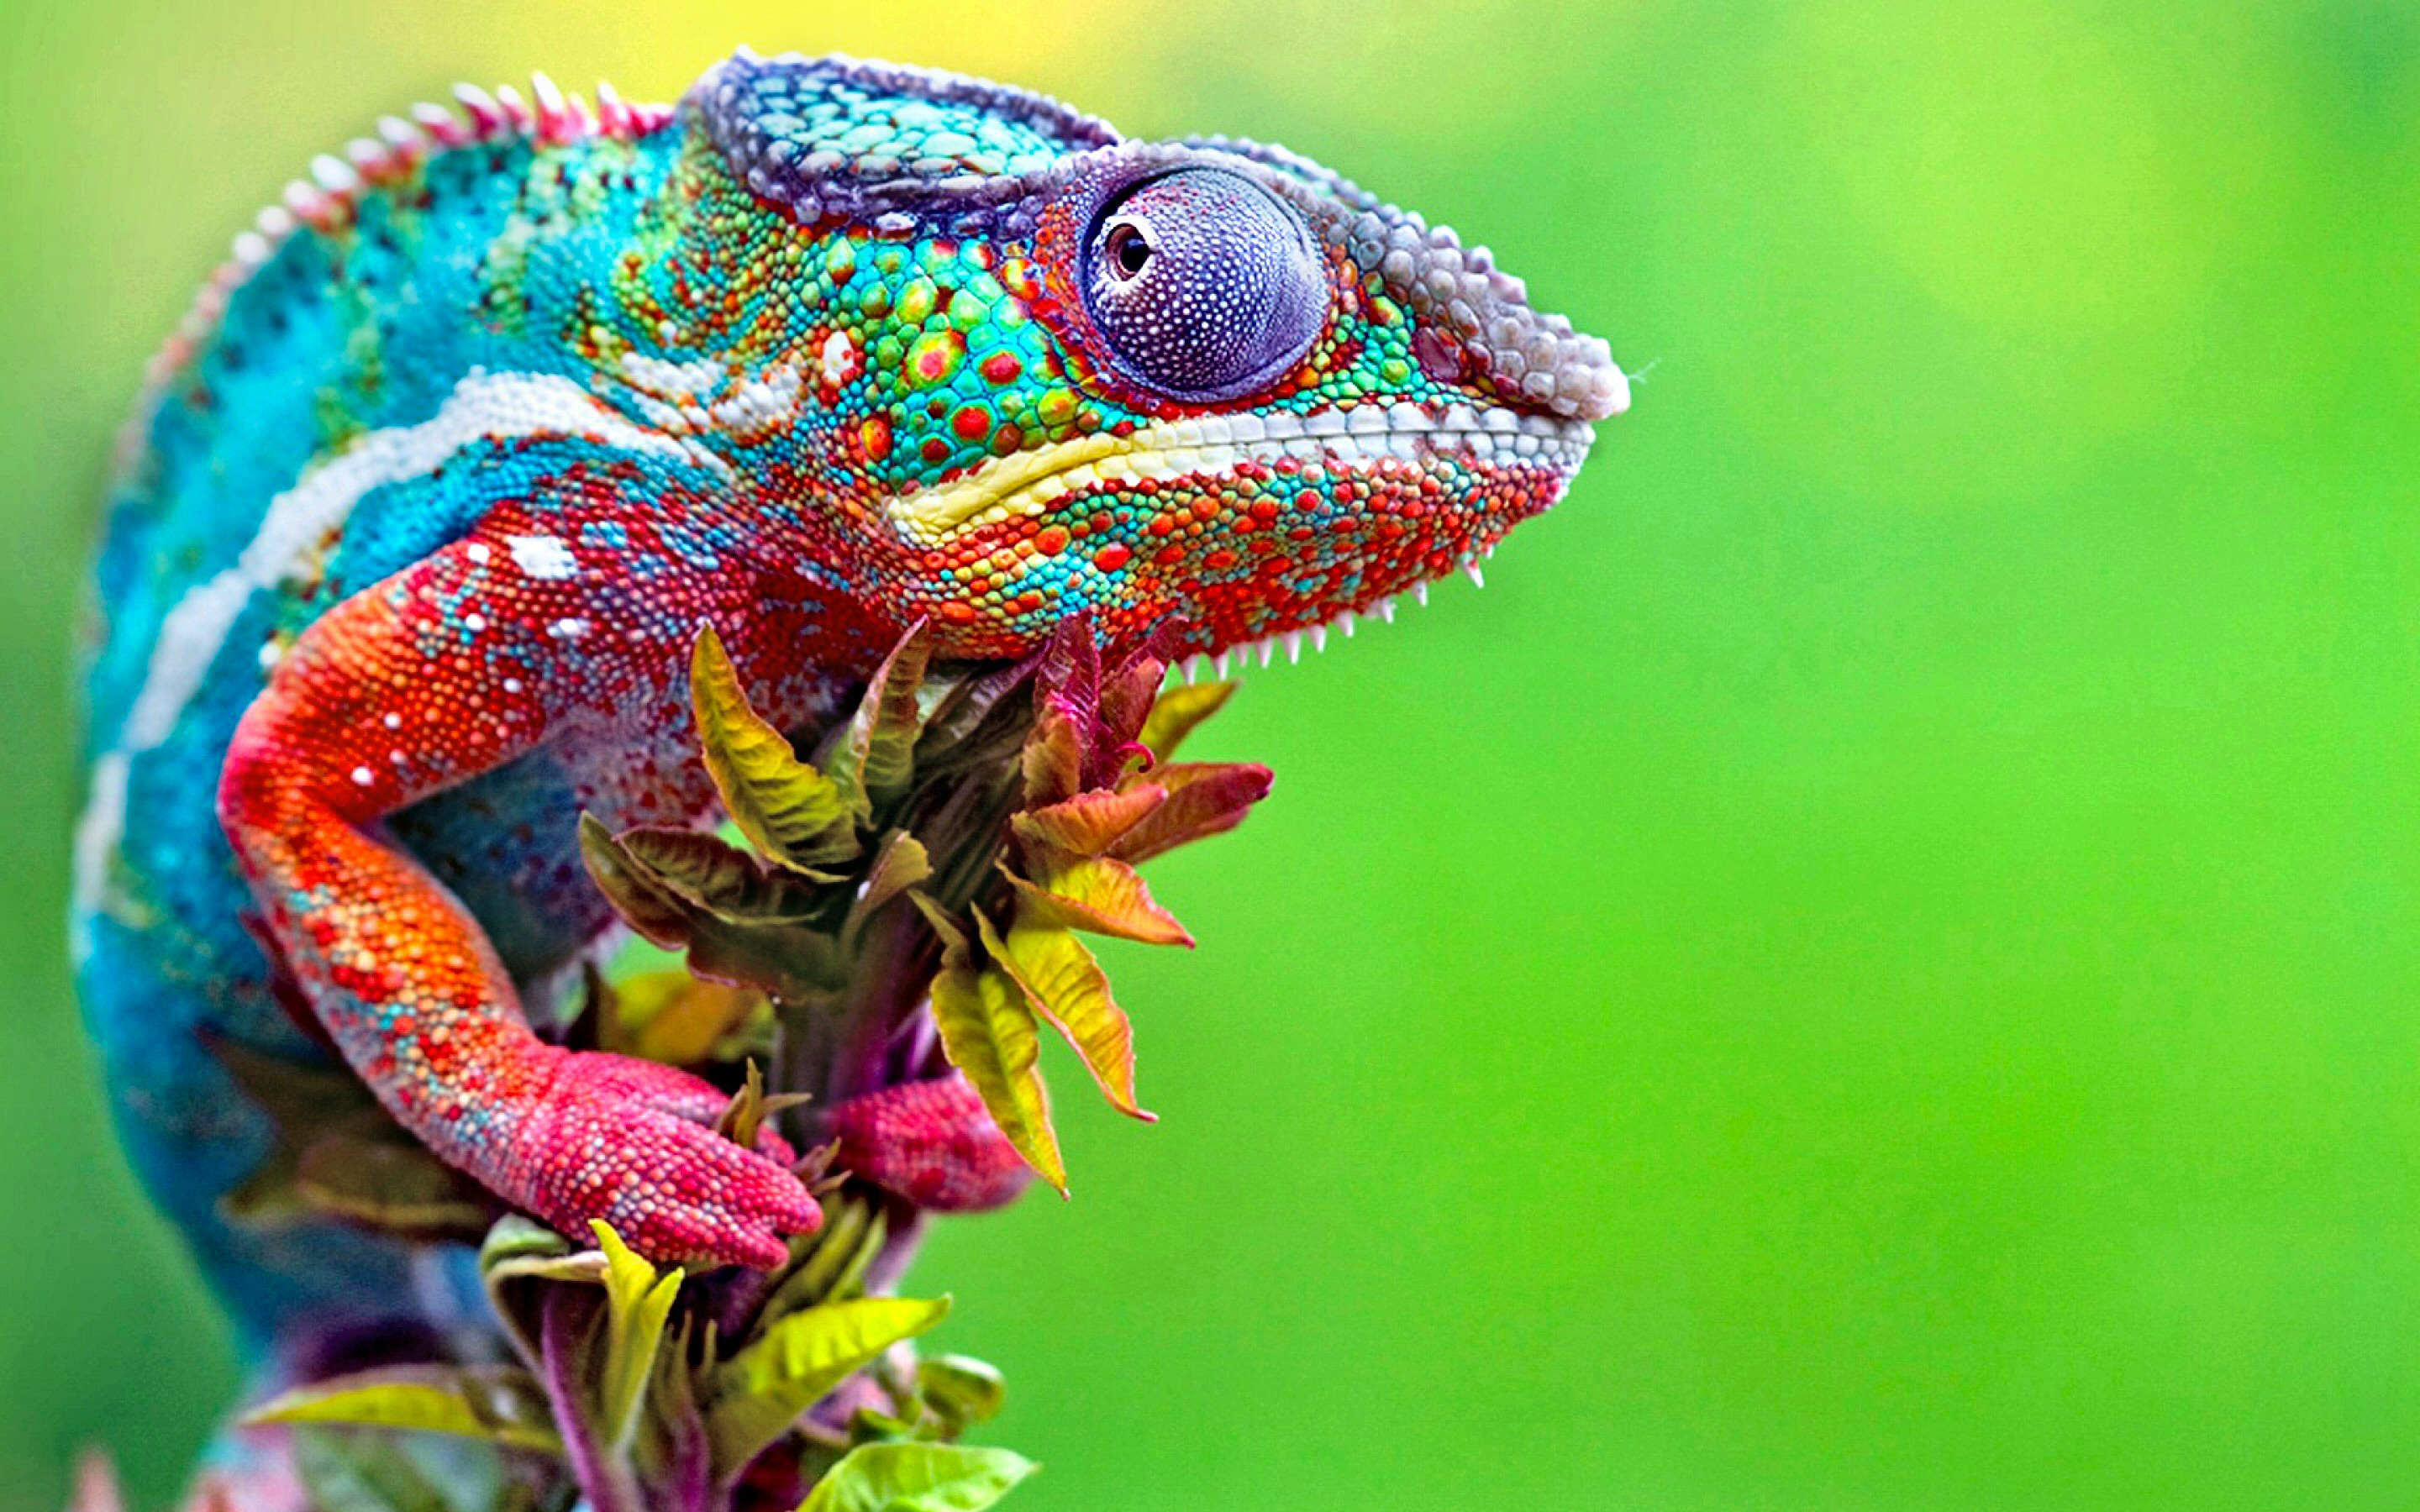 50034 animal hd wallpapers | background images - wallpaper abyss